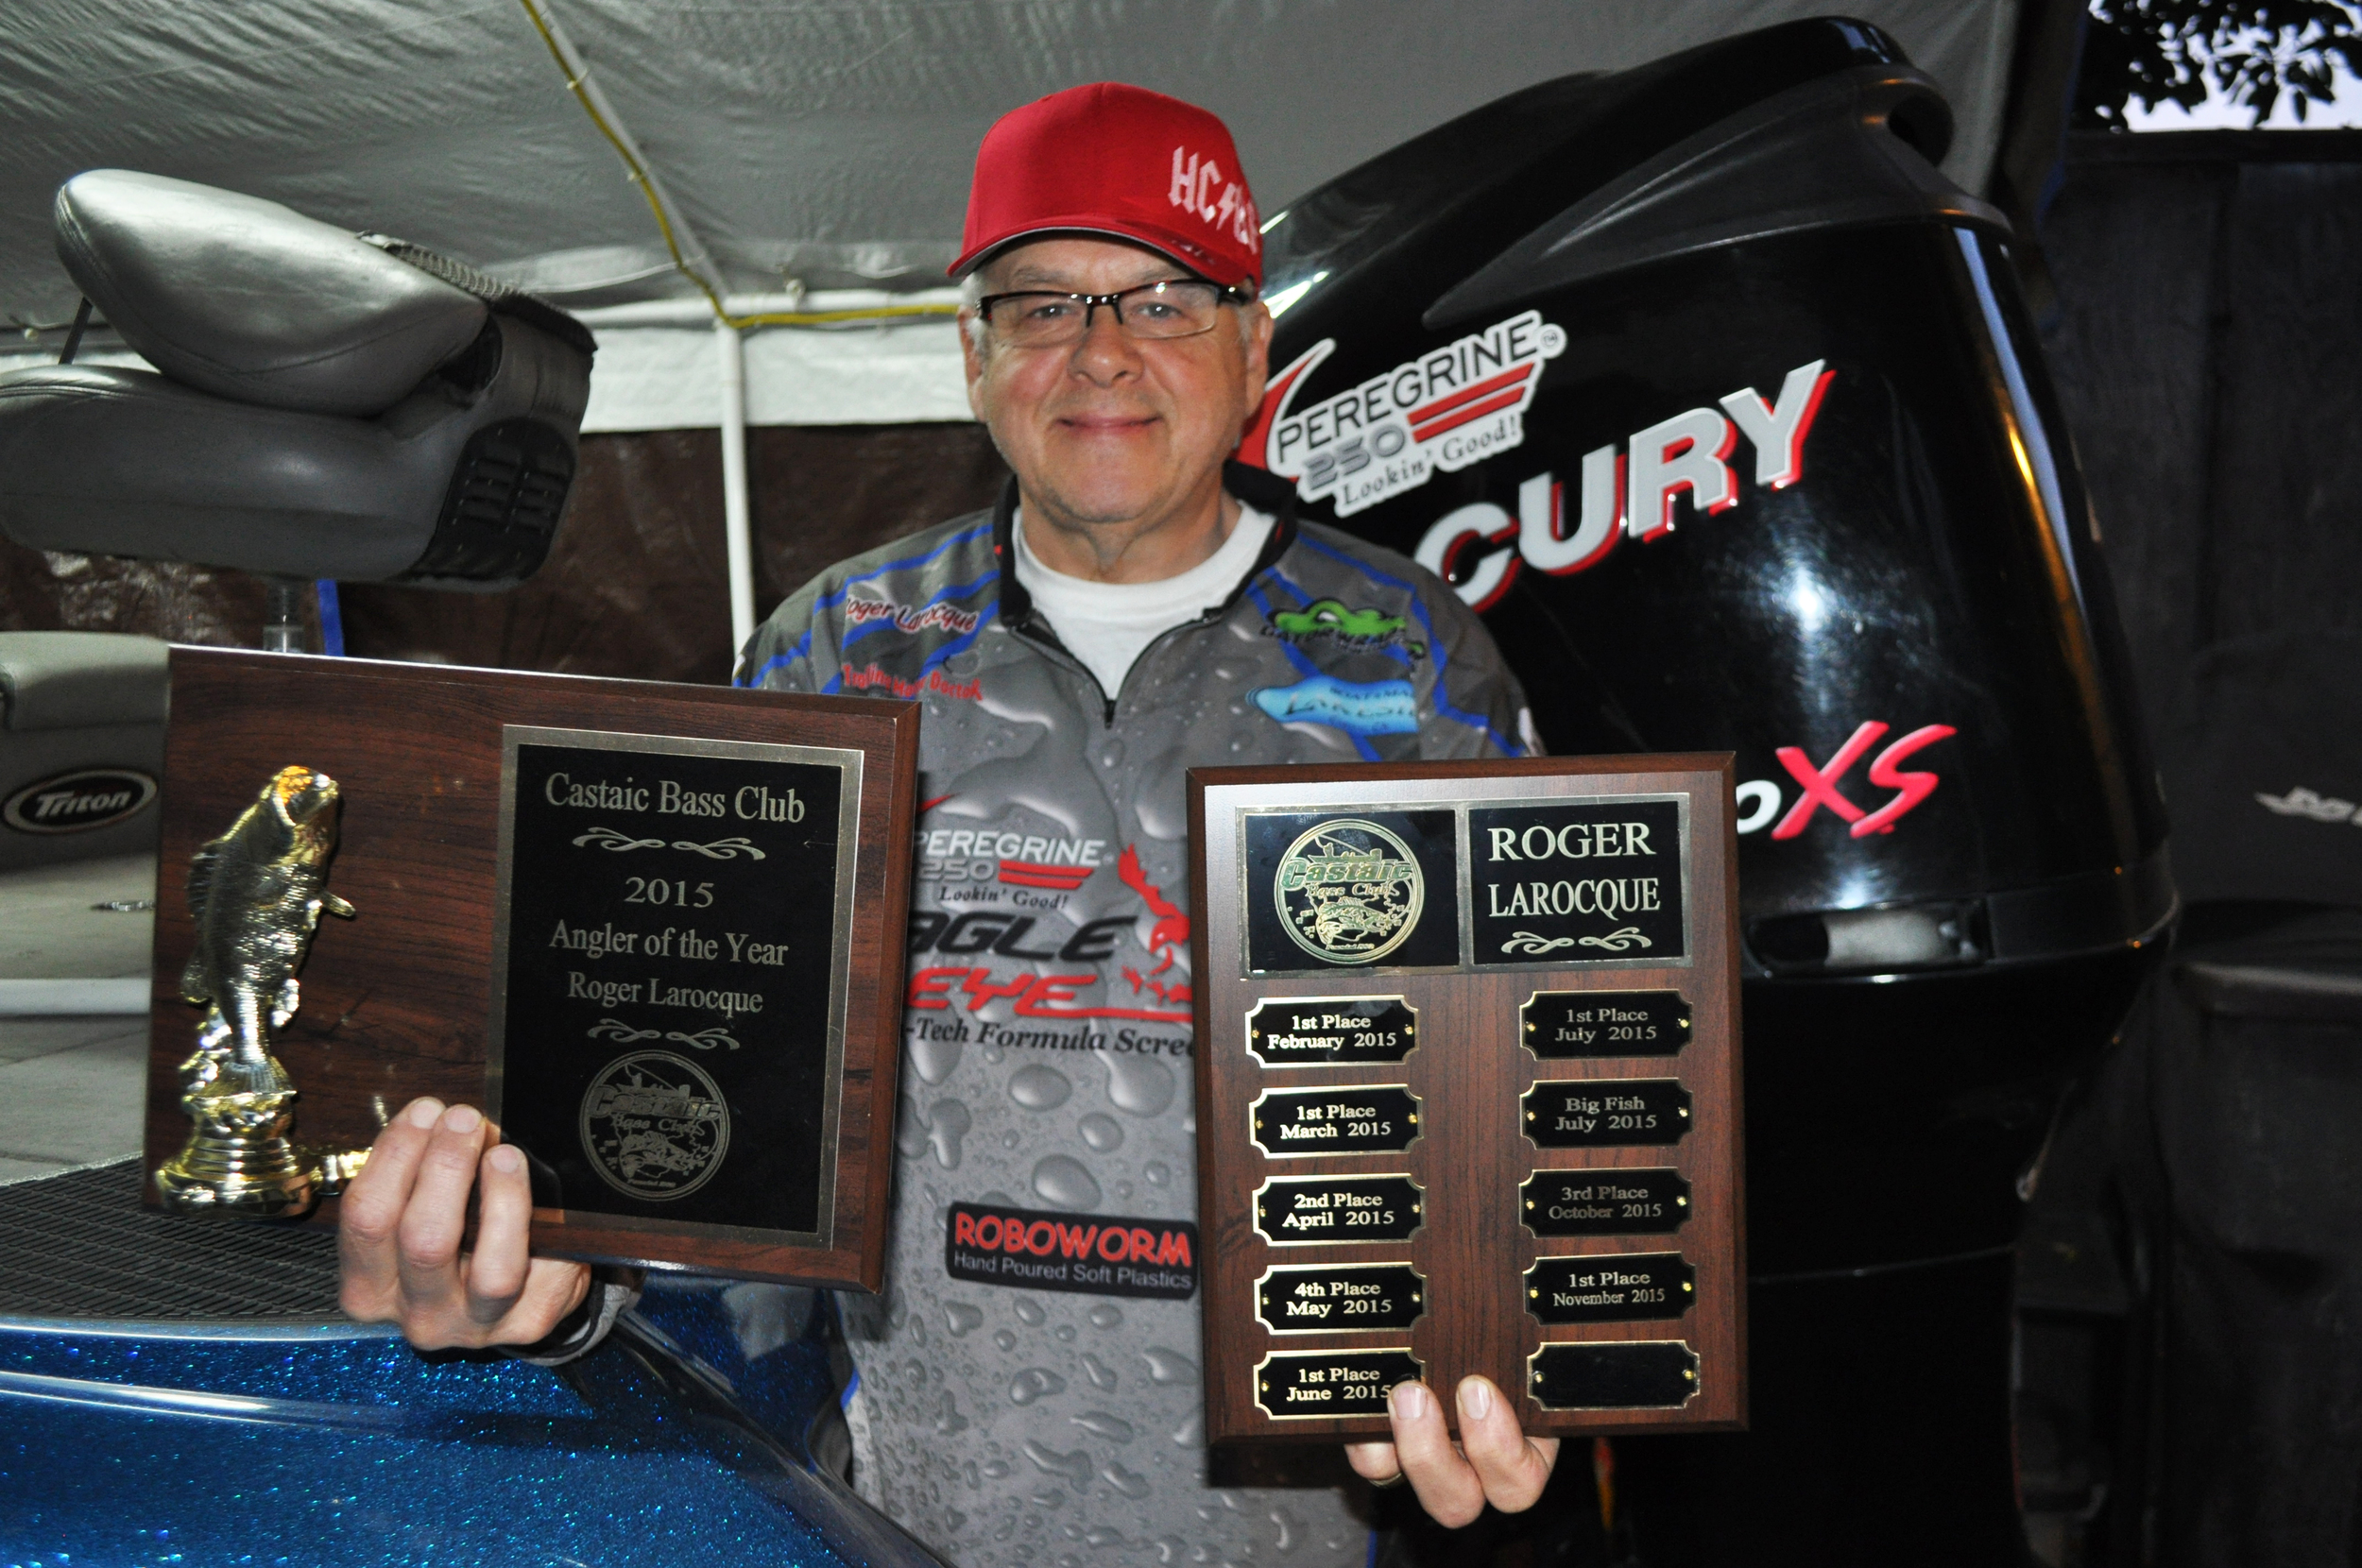 Castaic Bass Club 2015 Angler of the Year